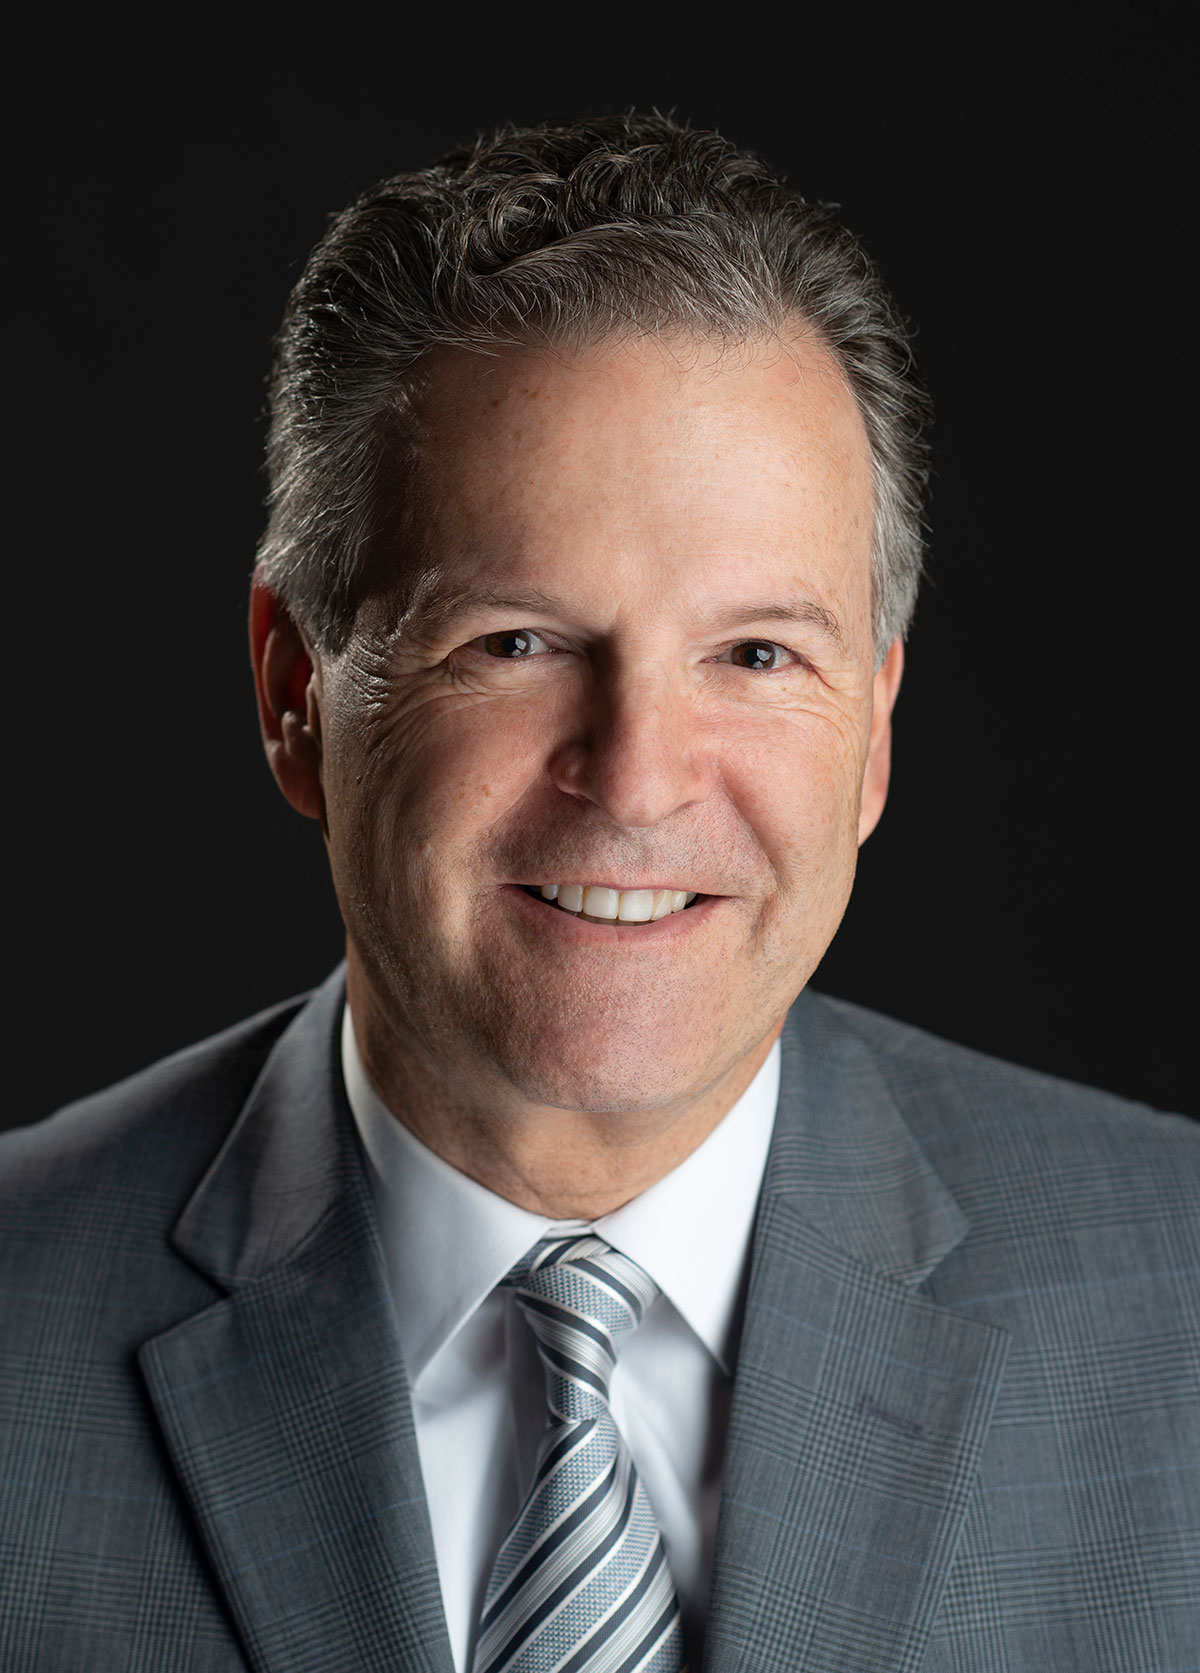 Corporate headshot of man wearing gray suite